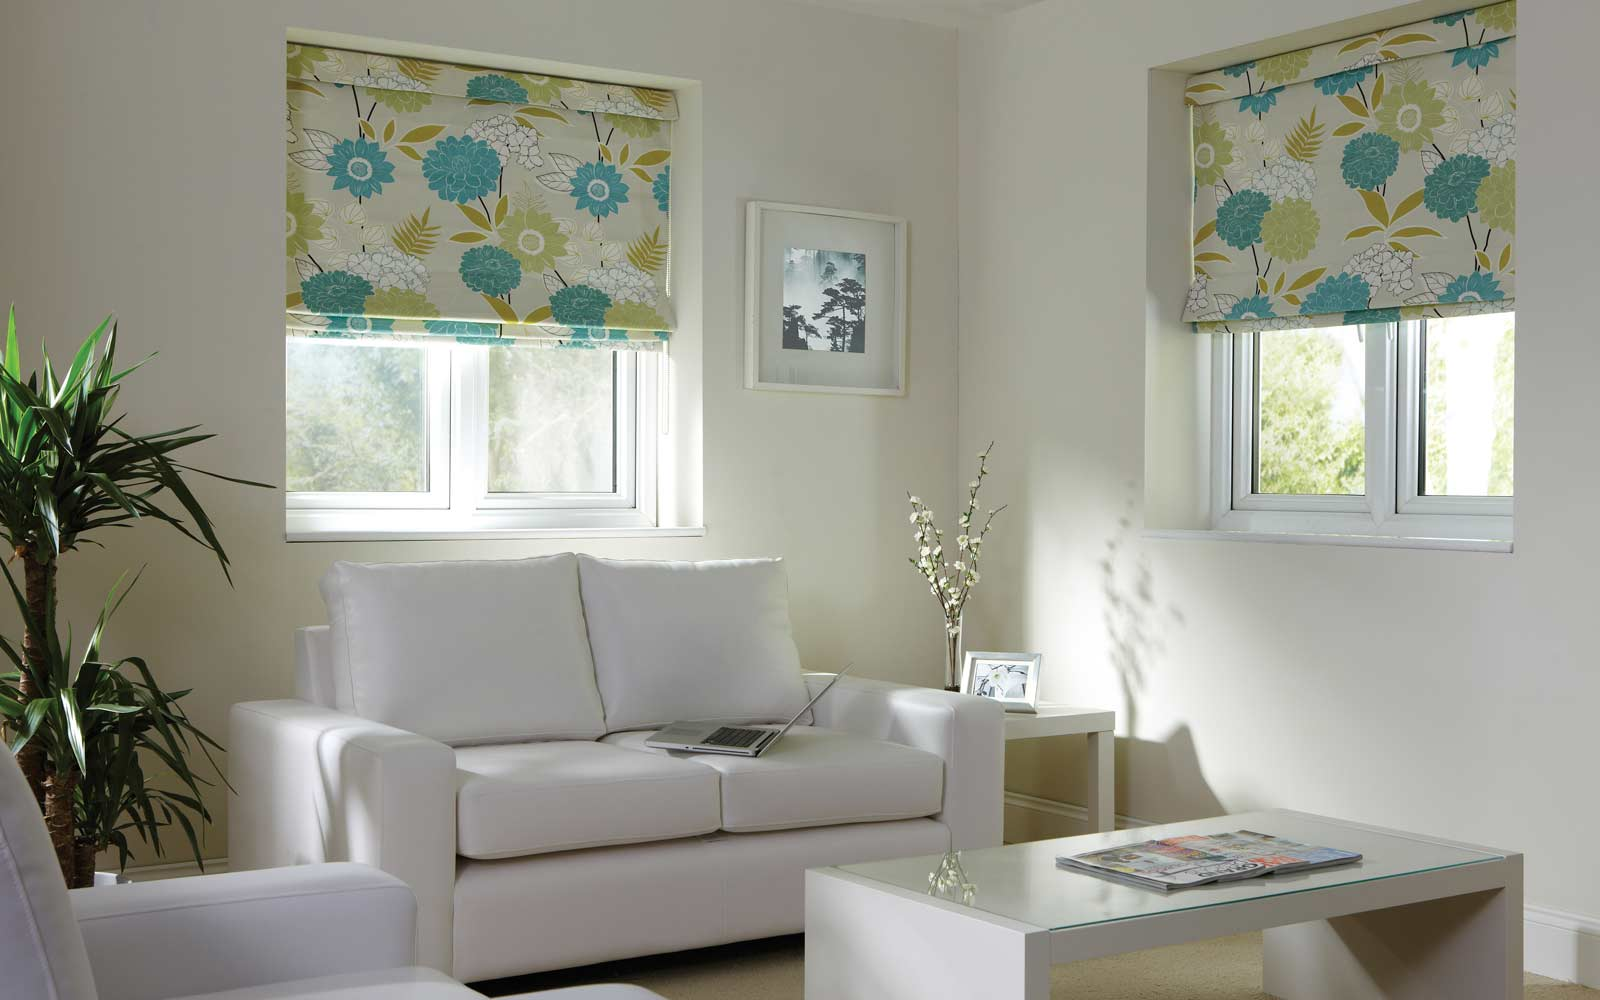 merit blinds milton keynes quotes for blinds bloc blinds two tiffany roman blinds set in a lounge close up